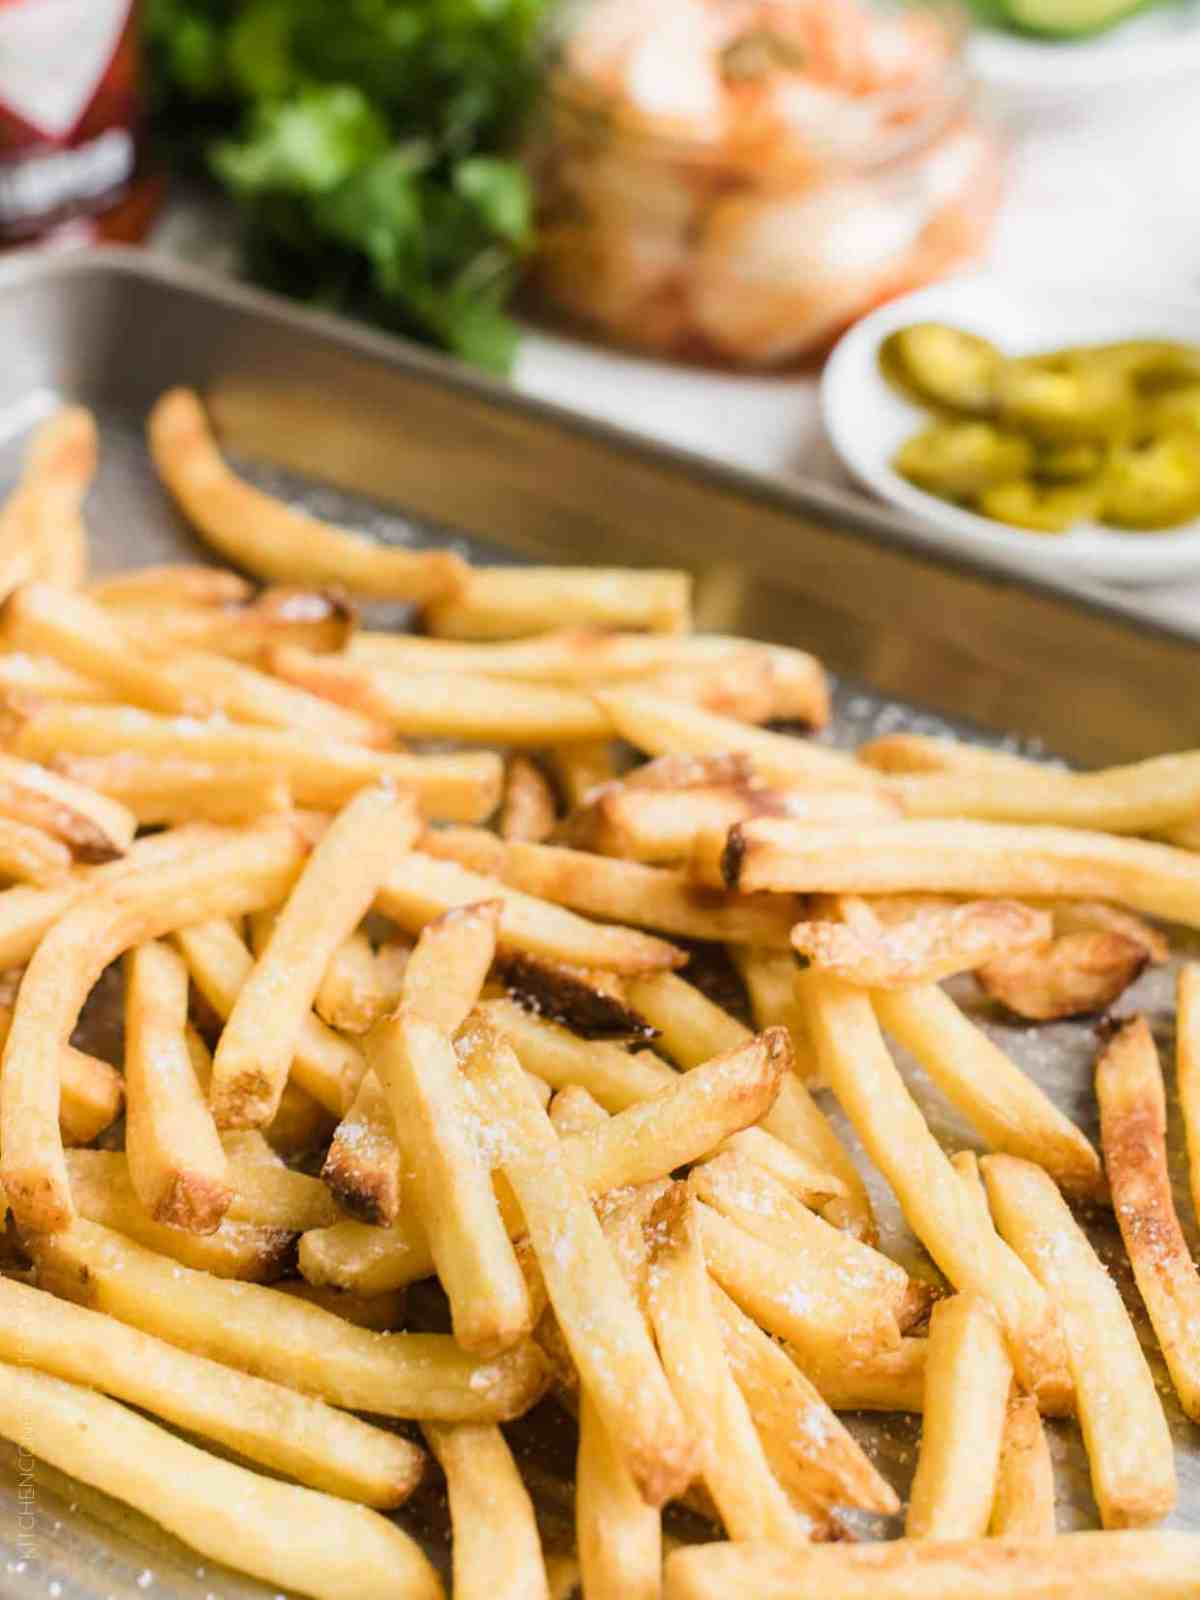 Close up view of French fries sprinkled with salt on a baking tray.